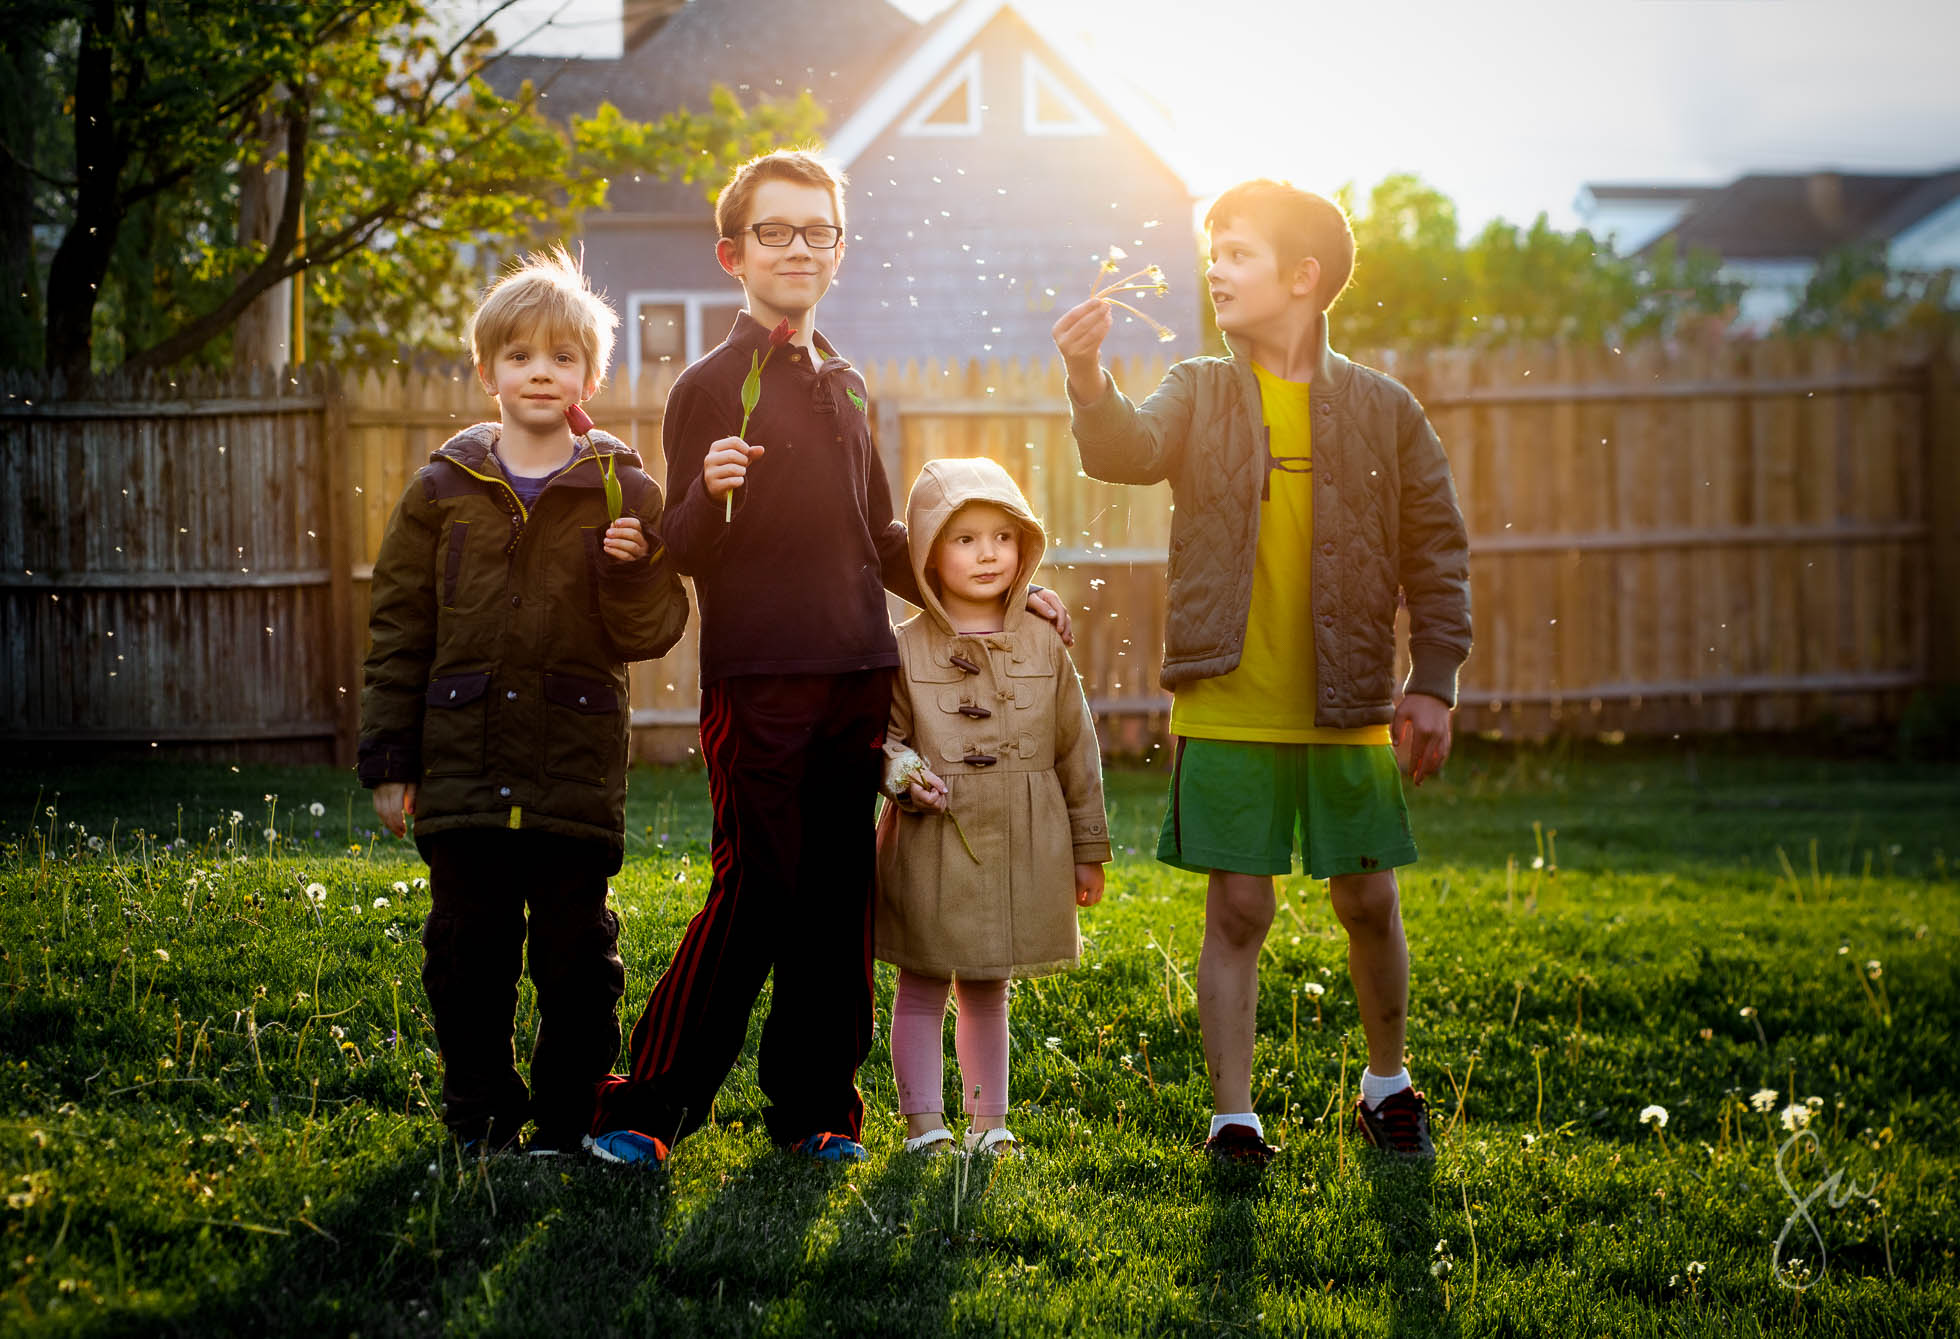 Children-Playing-with-Dandelions-in-the-Backyard-and-Blowing-Seeds-that-Look-Like-Snow-in-Backlighting-at-Golden-Hour--2